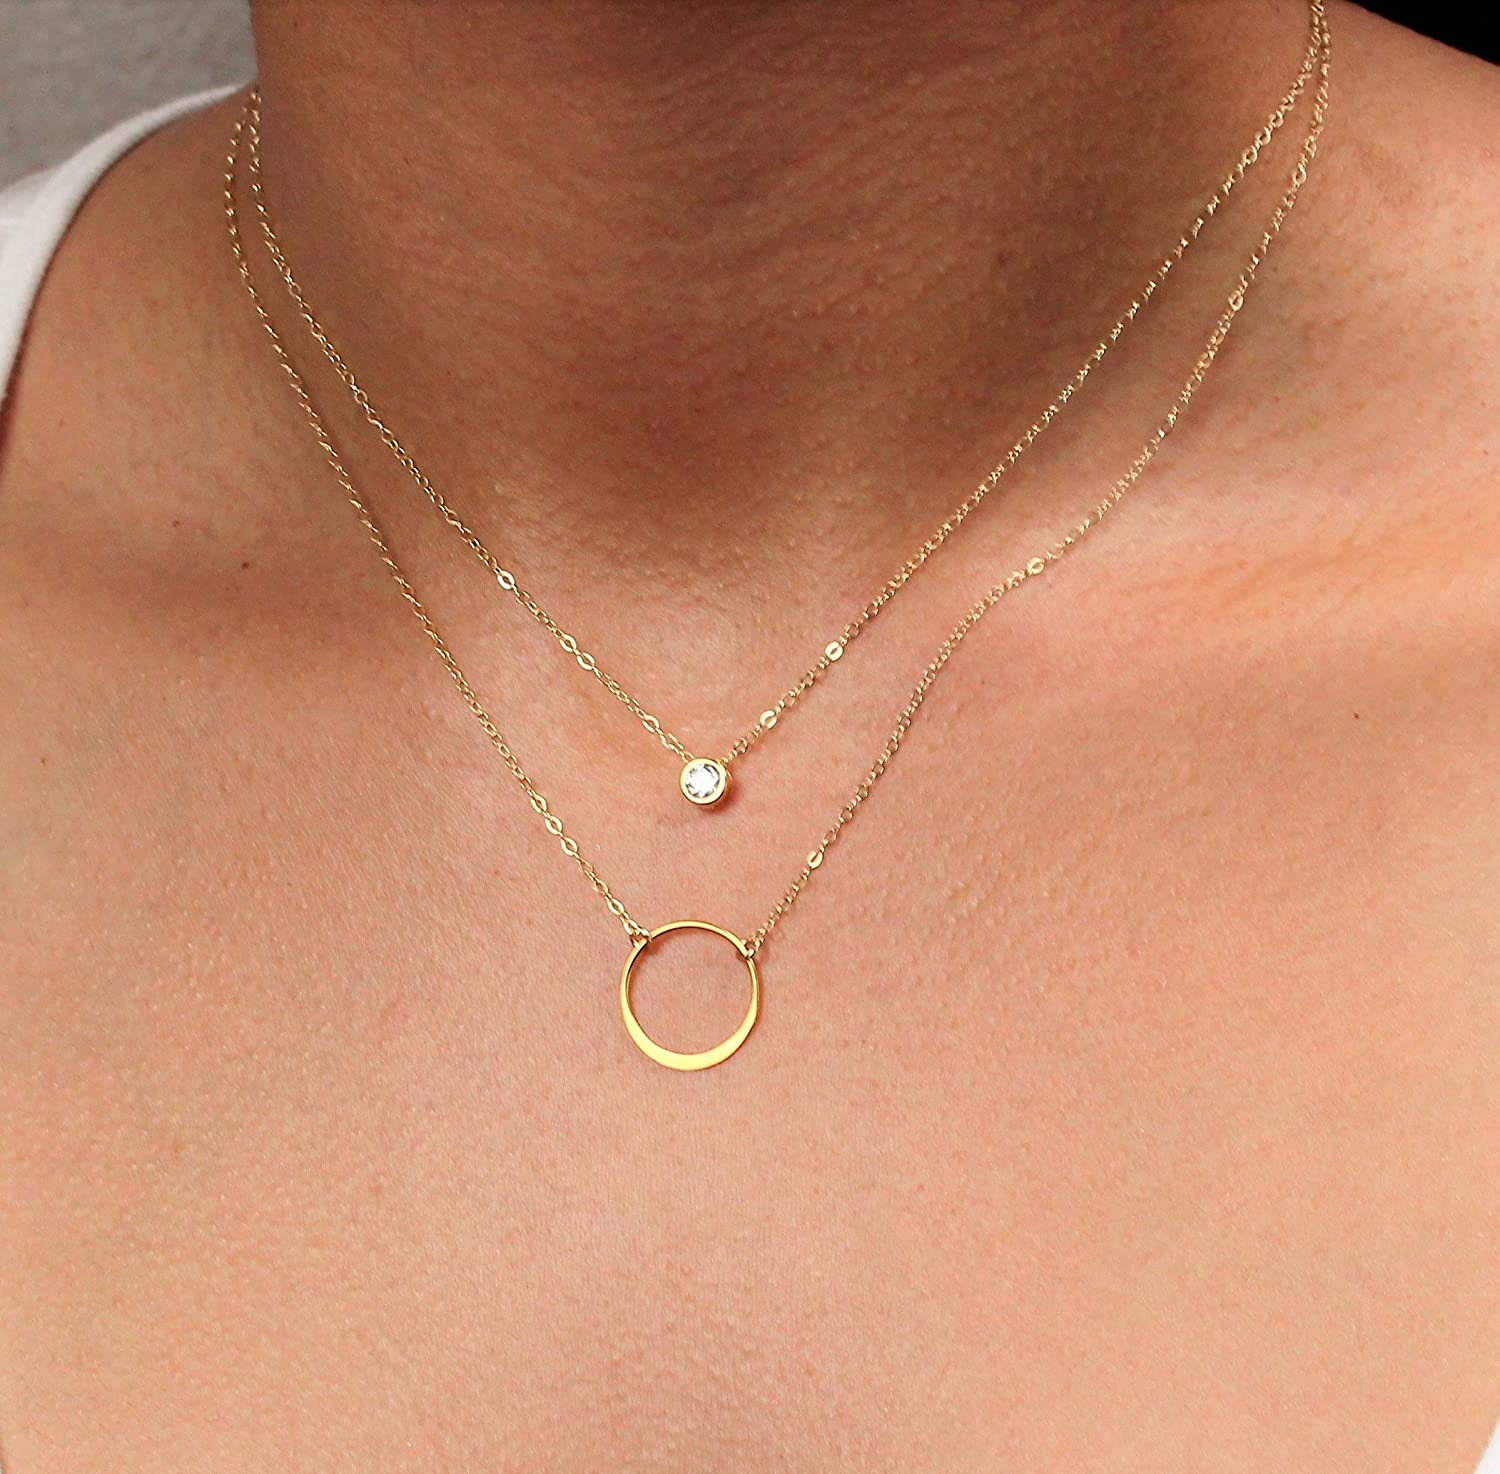 65c02937cd82b4 Amazon.com: Delicate Karma Circle Ring and Cubic Zirconia CZ Diamond  Layered Necklace Set, Silver or Gold Layering Jewelry: Handmade